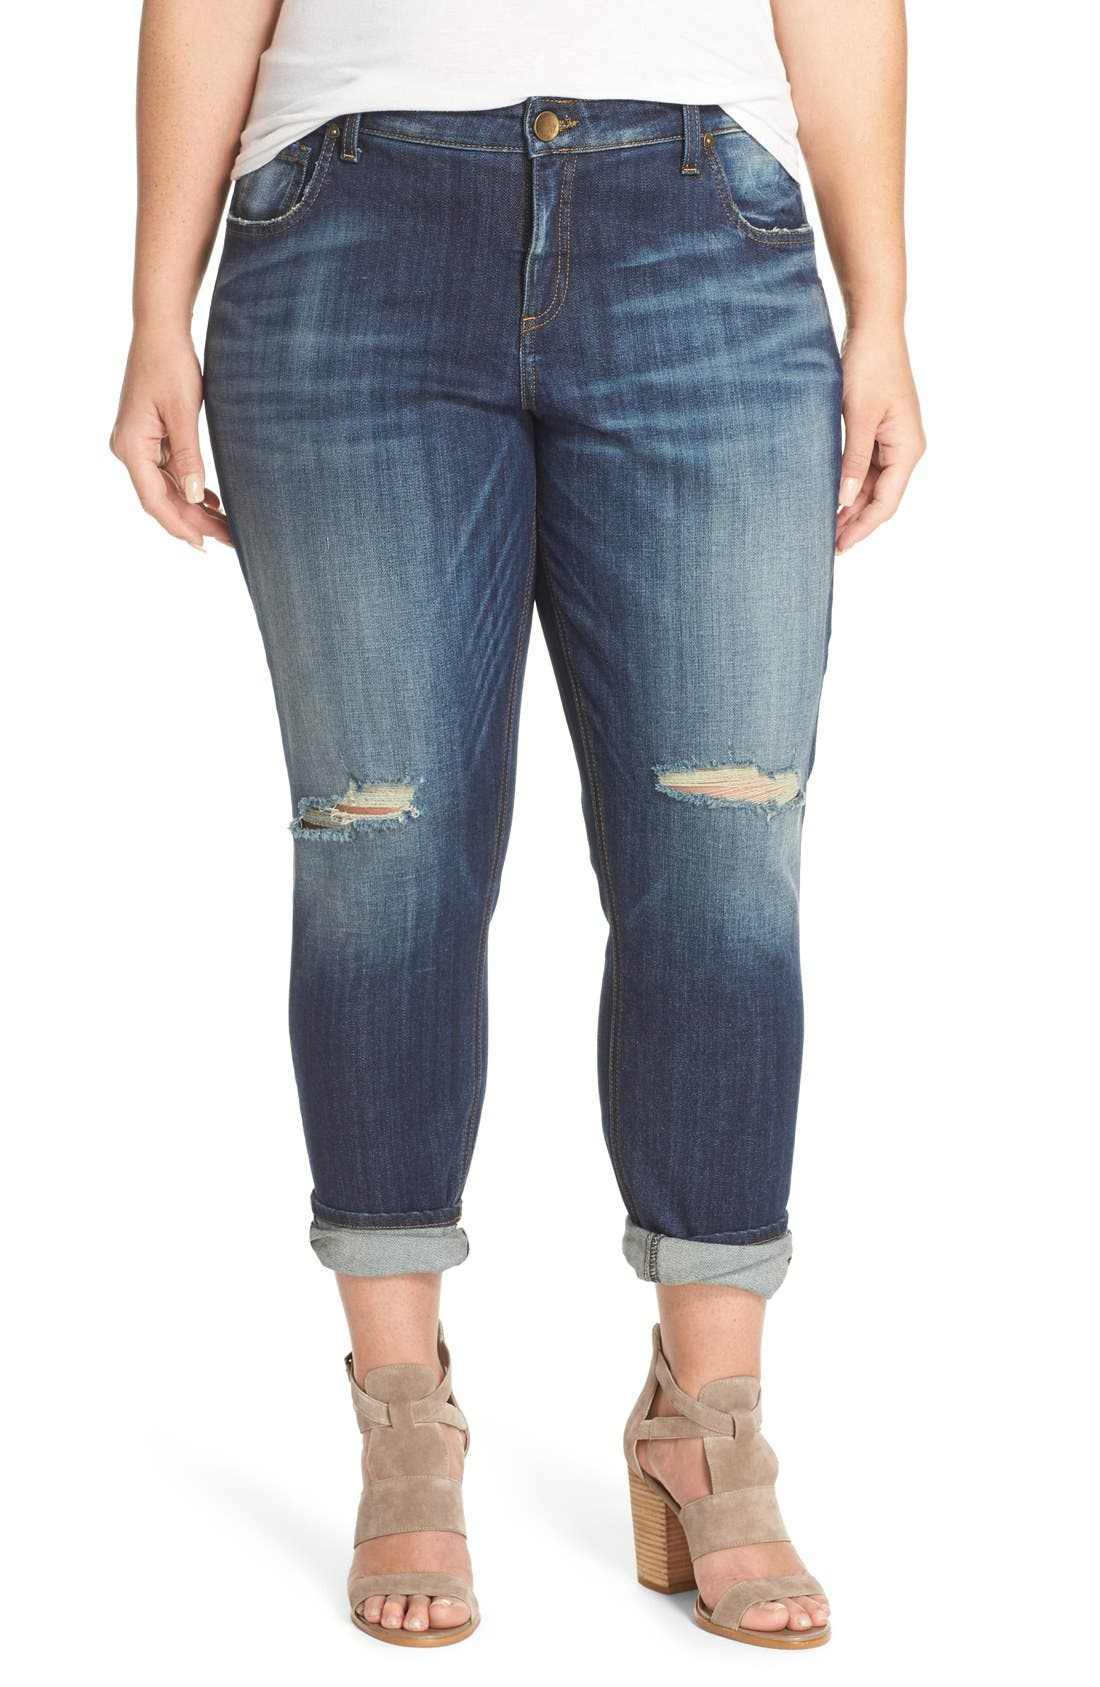 KUT FROM THE KLOTH 'Catherine' Ripped Boyfriend Jeans